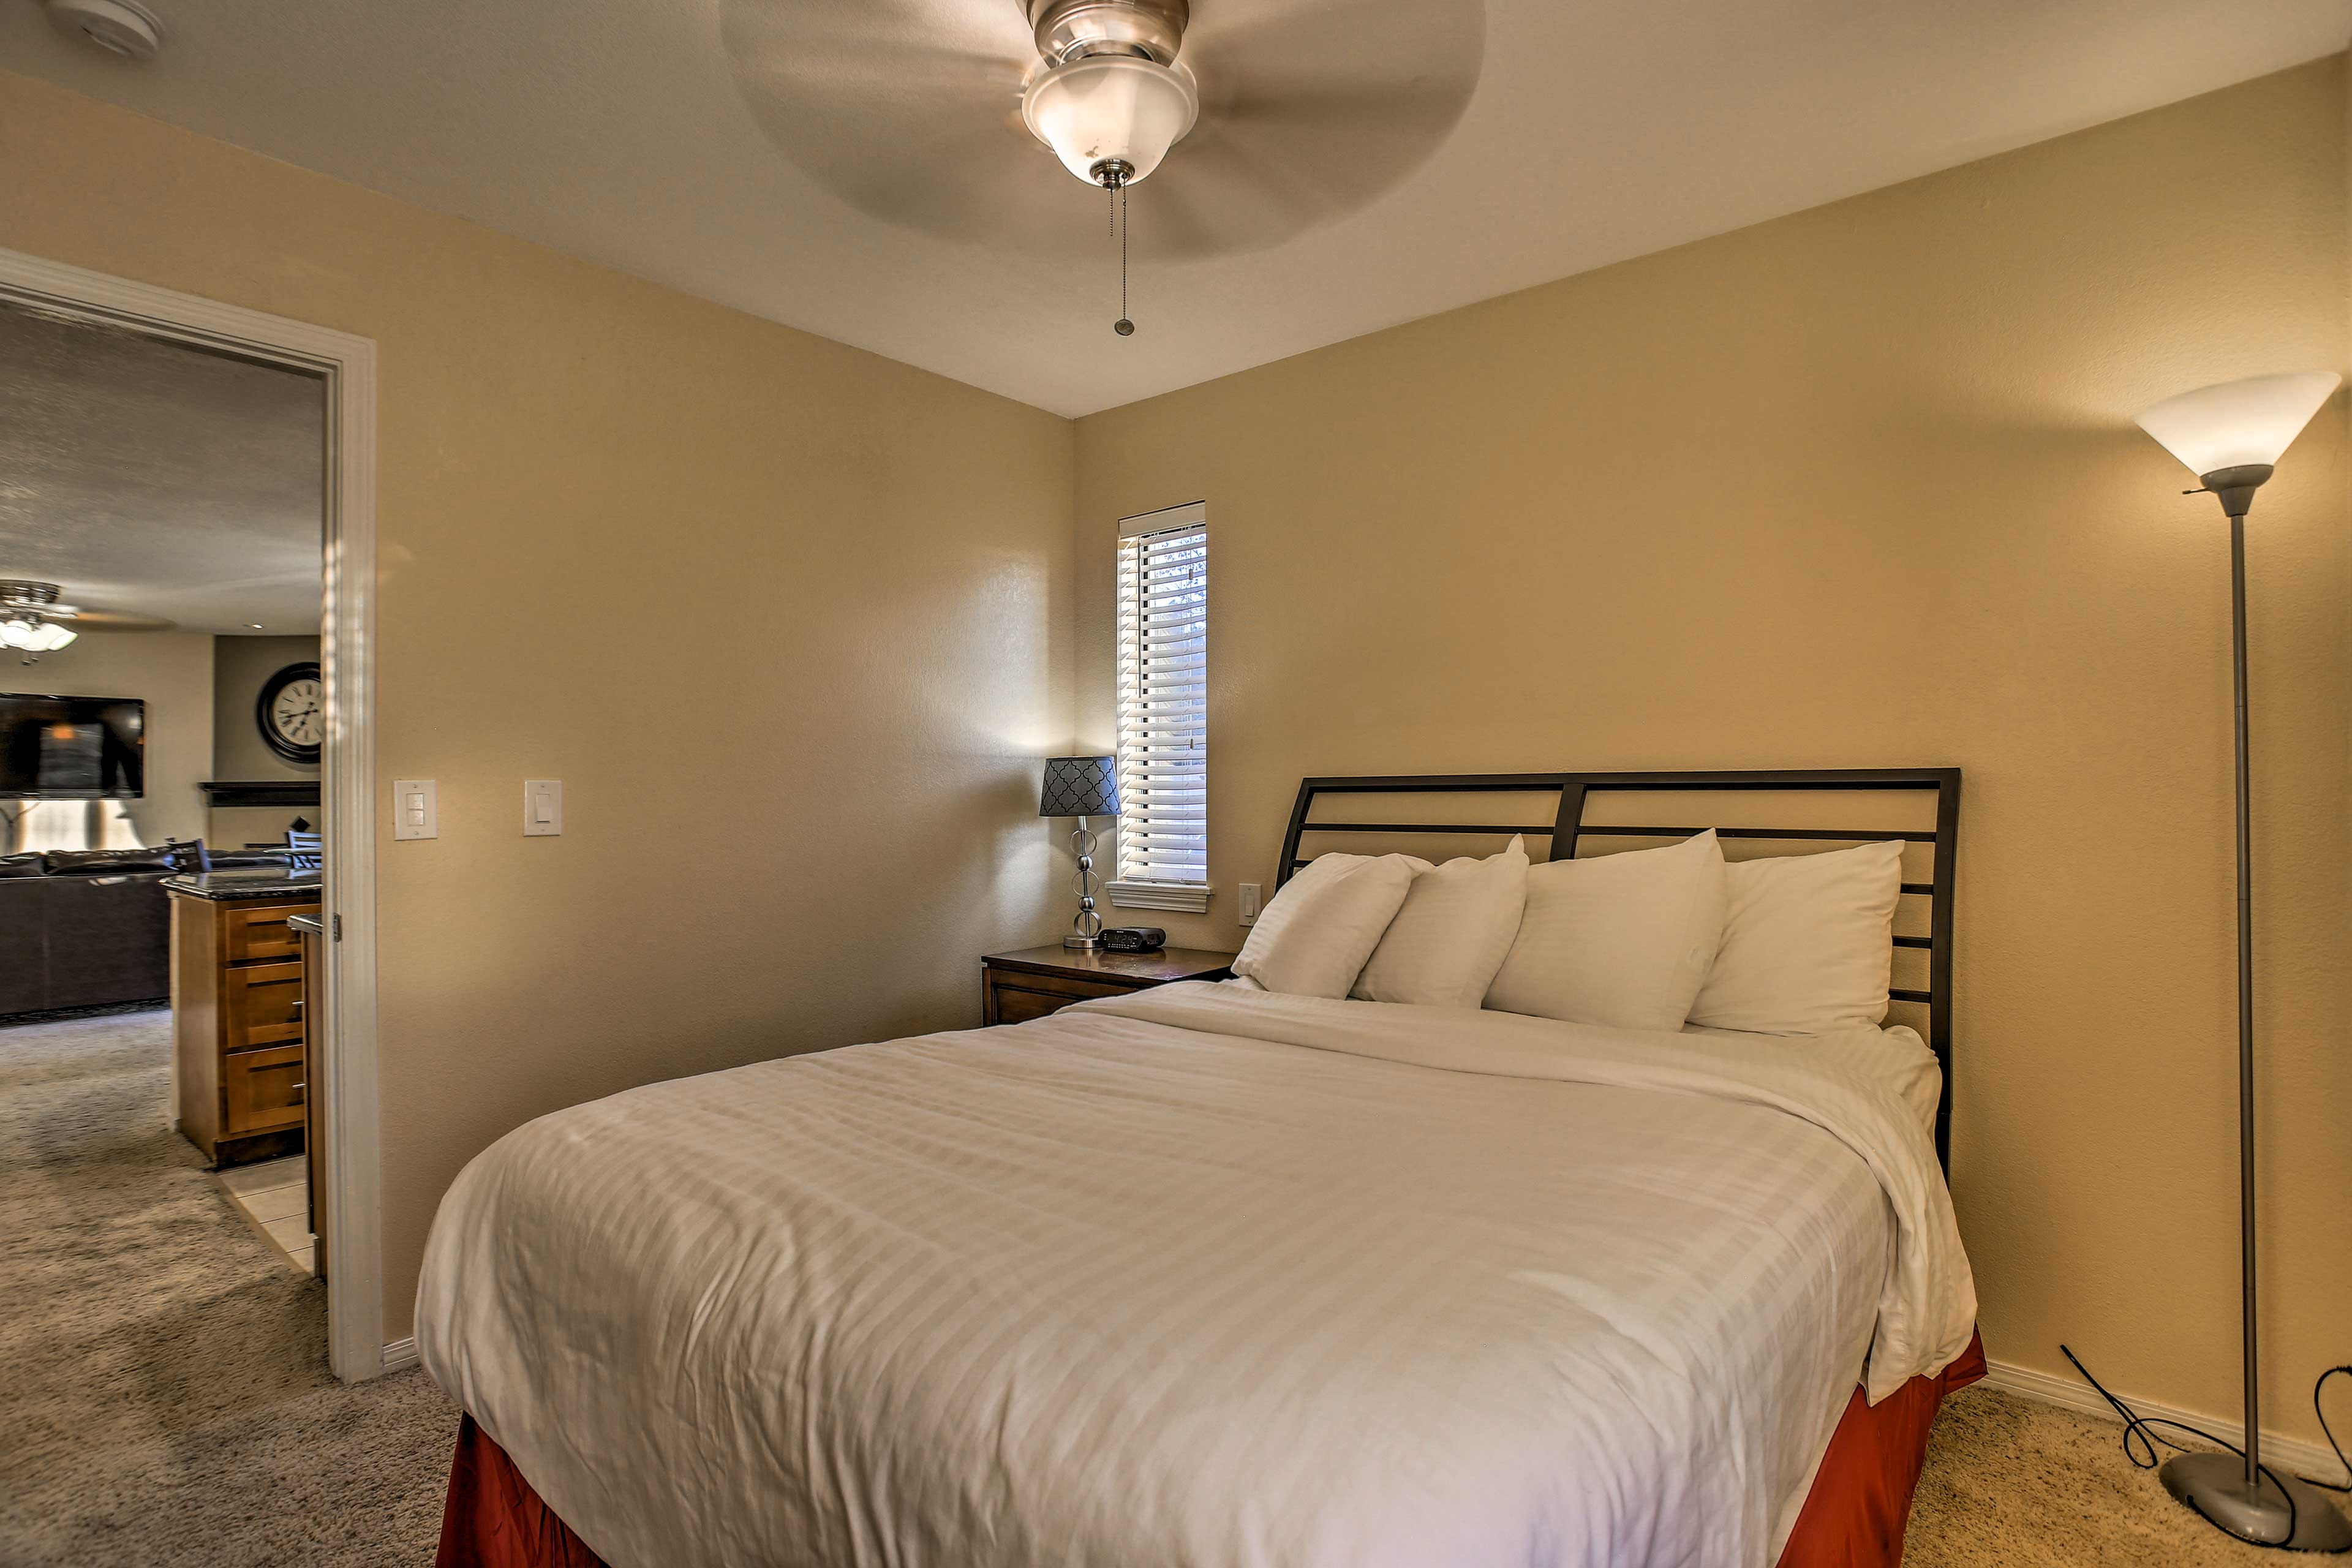 Rest easy on the queen bed in this room.